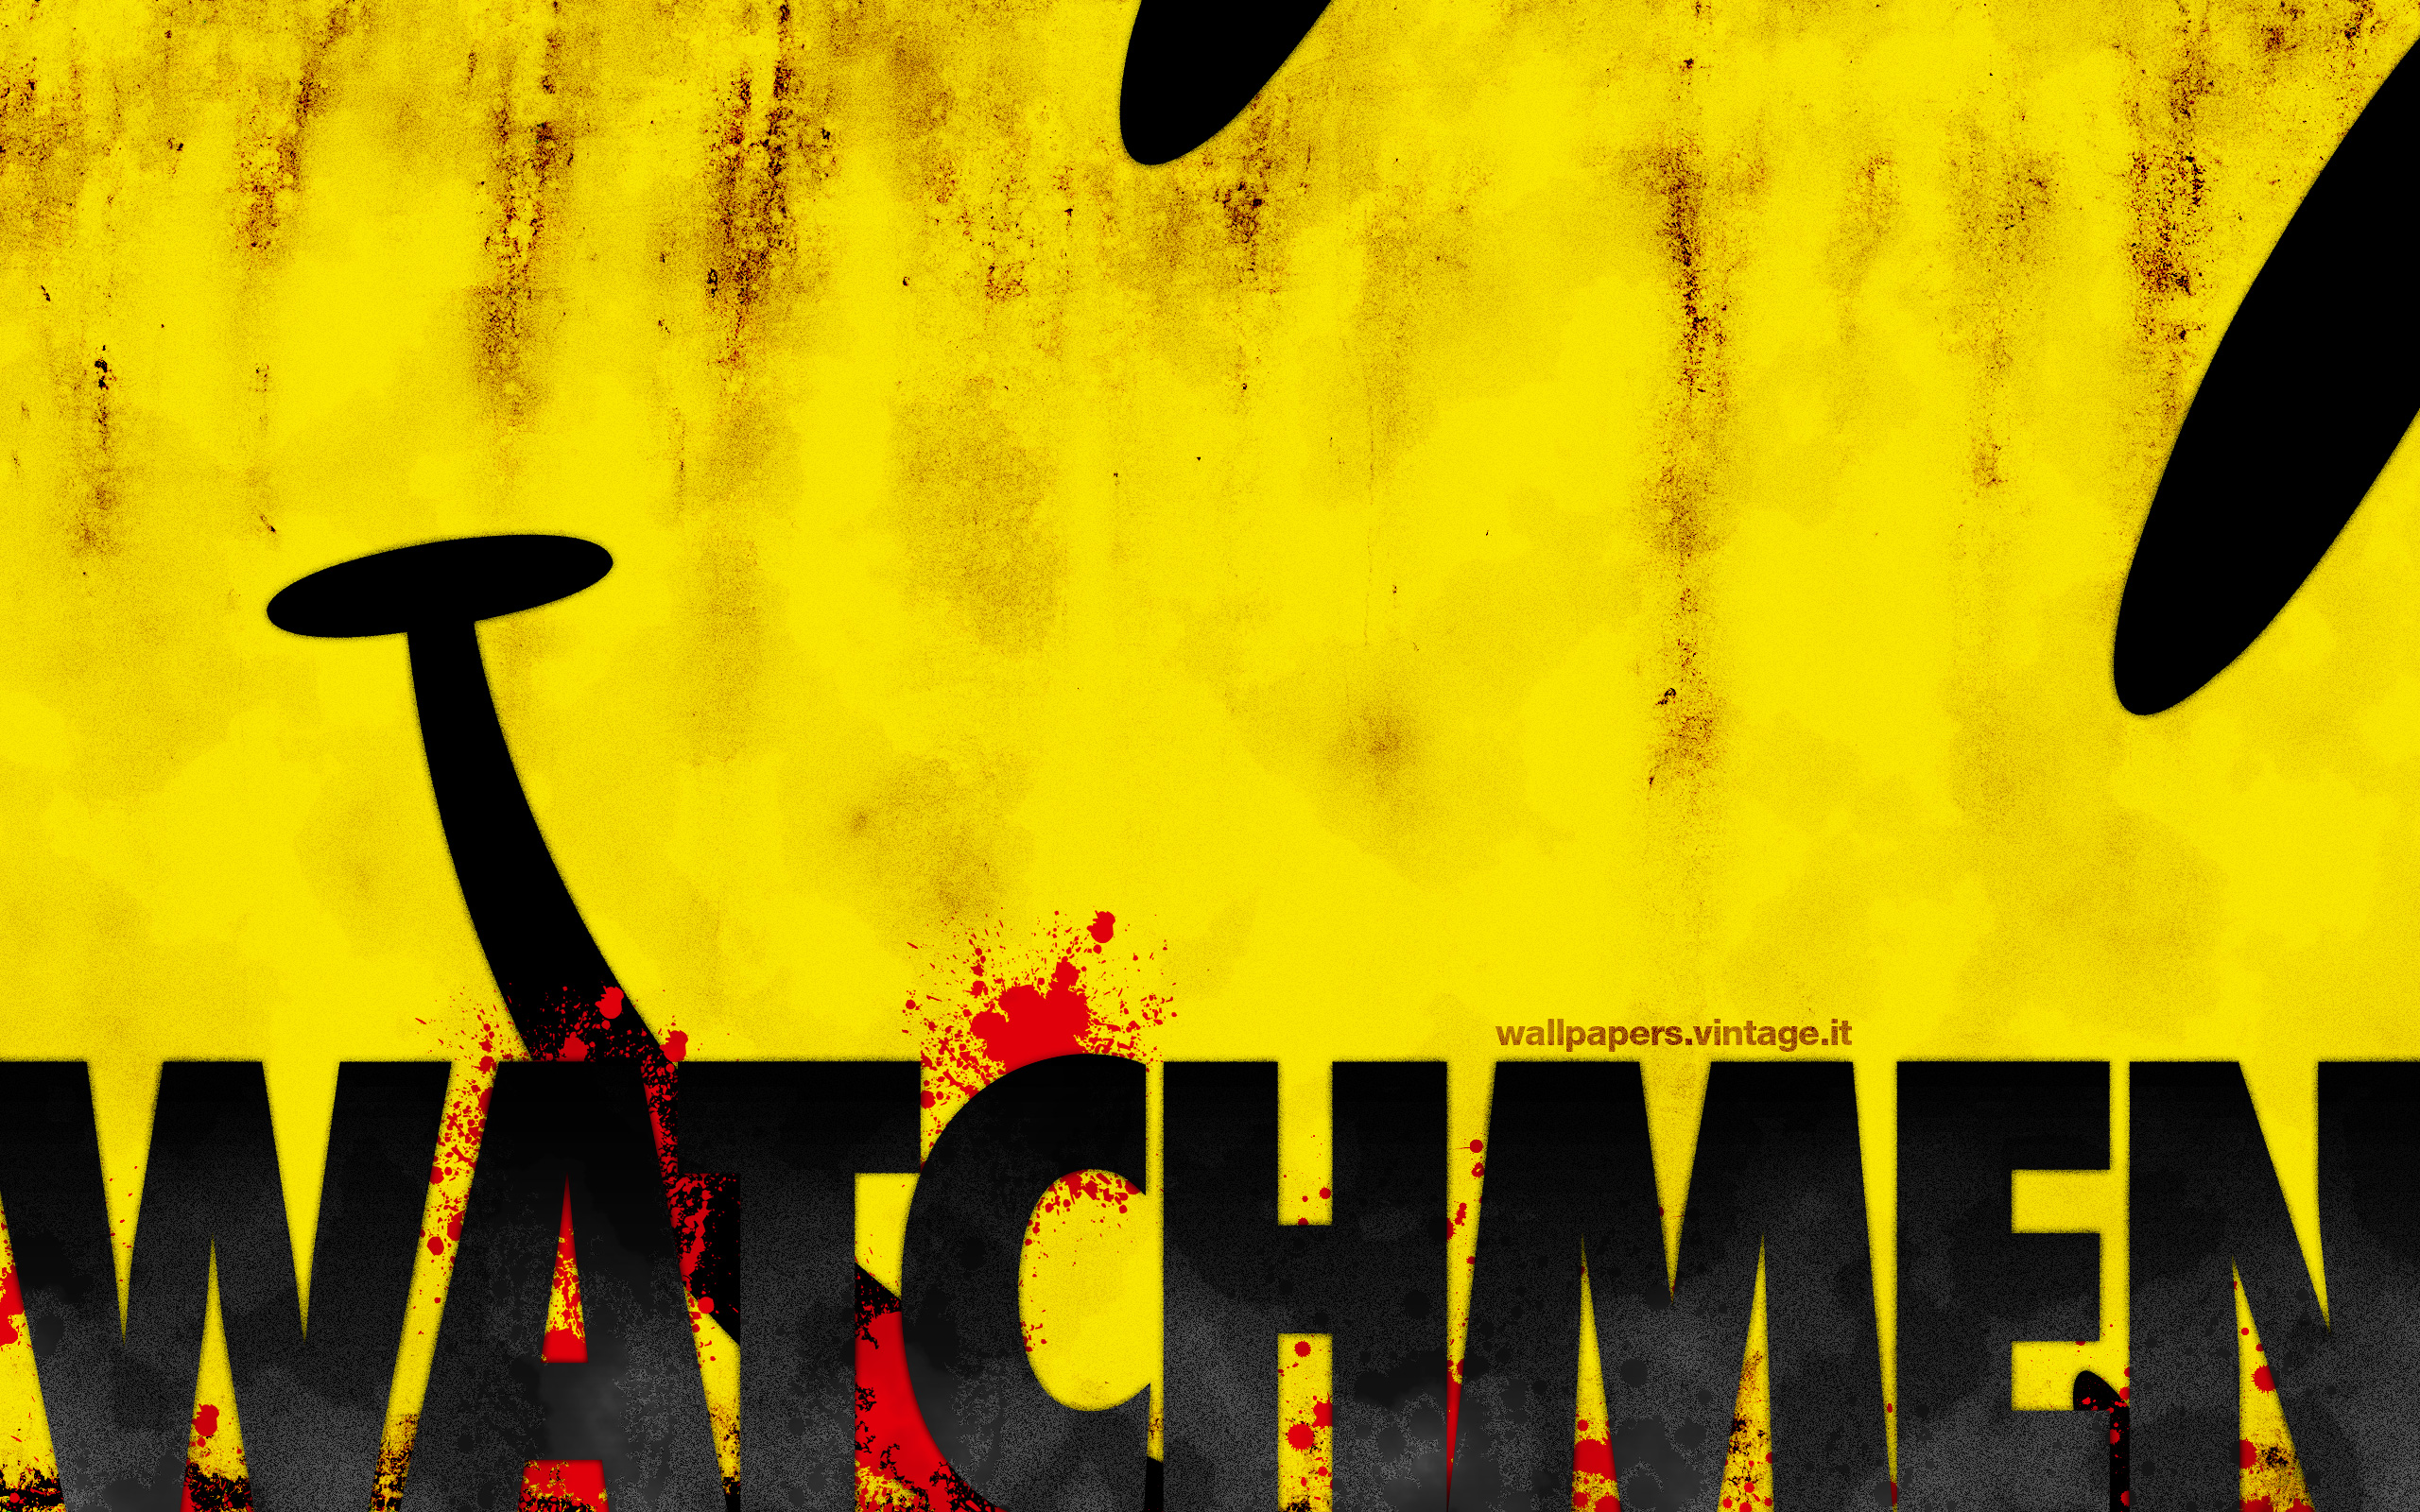 watchmen wallpaper - free desktop hd ipad iphone wallpapers